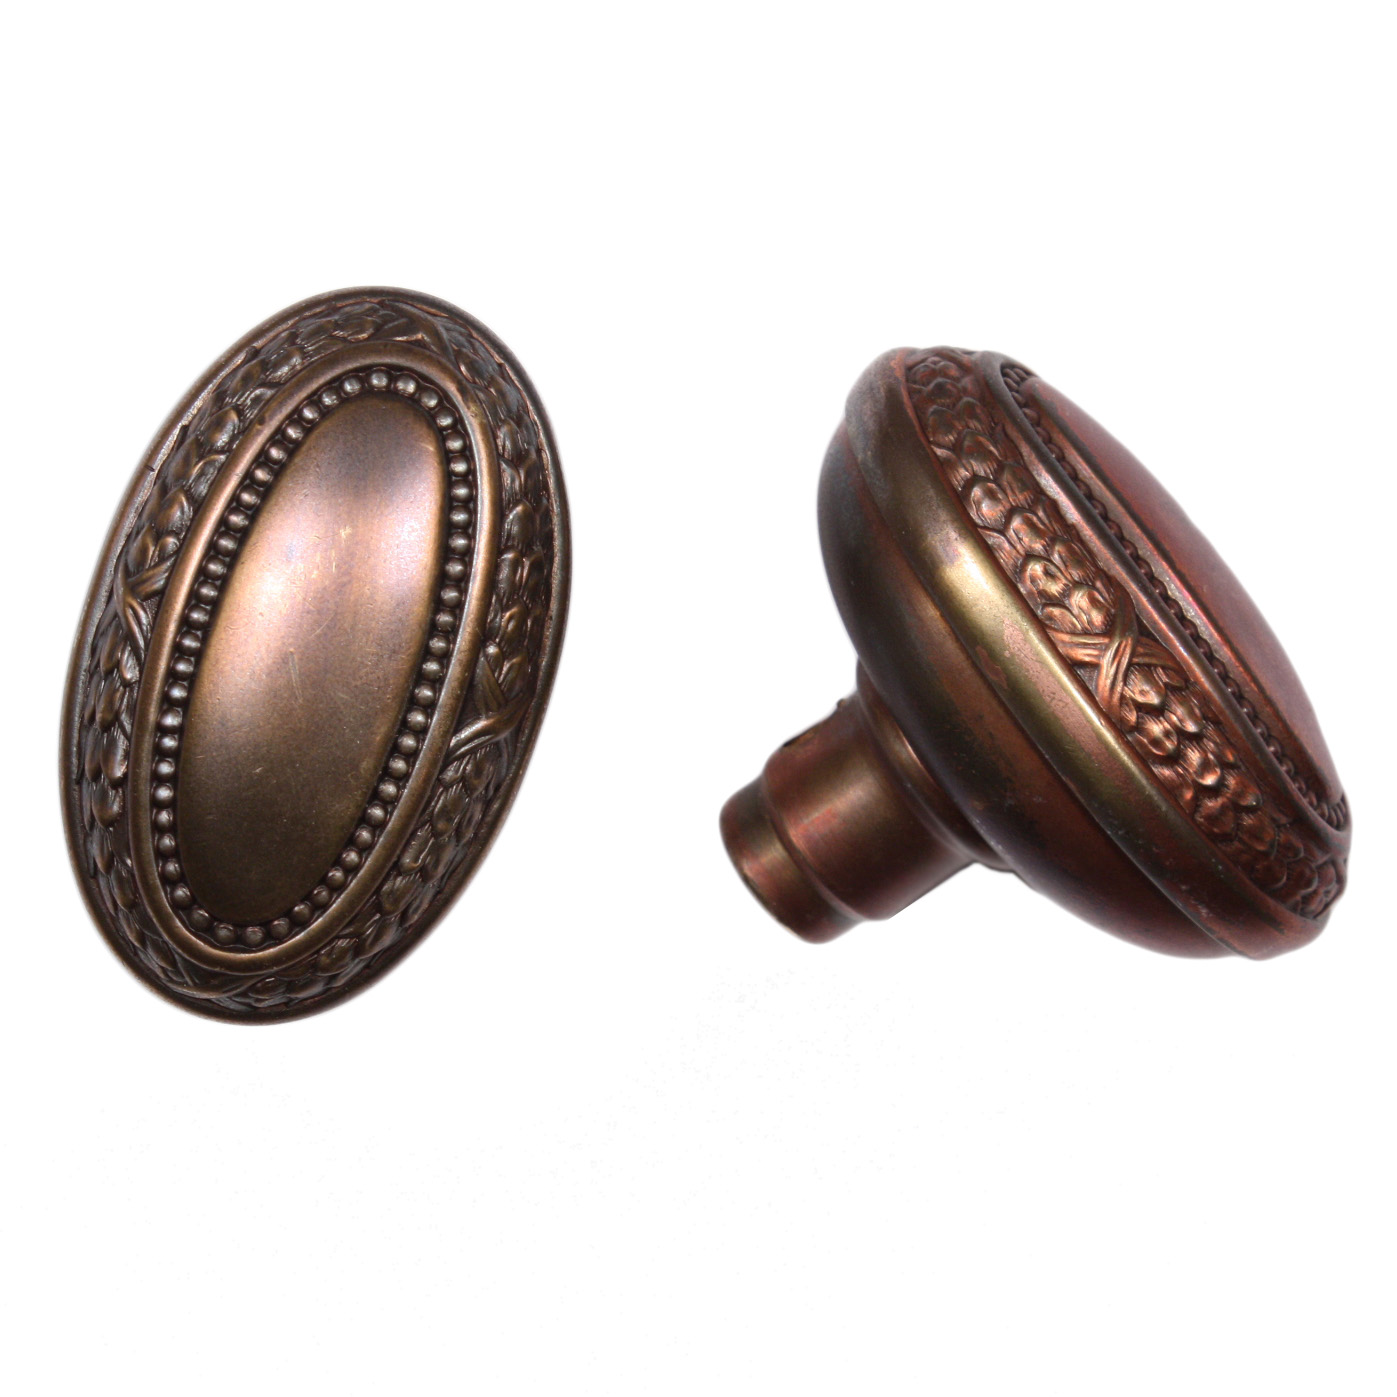 Exceptional Antique Brass Oval Doorknob Sets With Plates, Copper Flashed, Japanned,  NDKS193 RW For Sale | Antiques.com | Classifieds